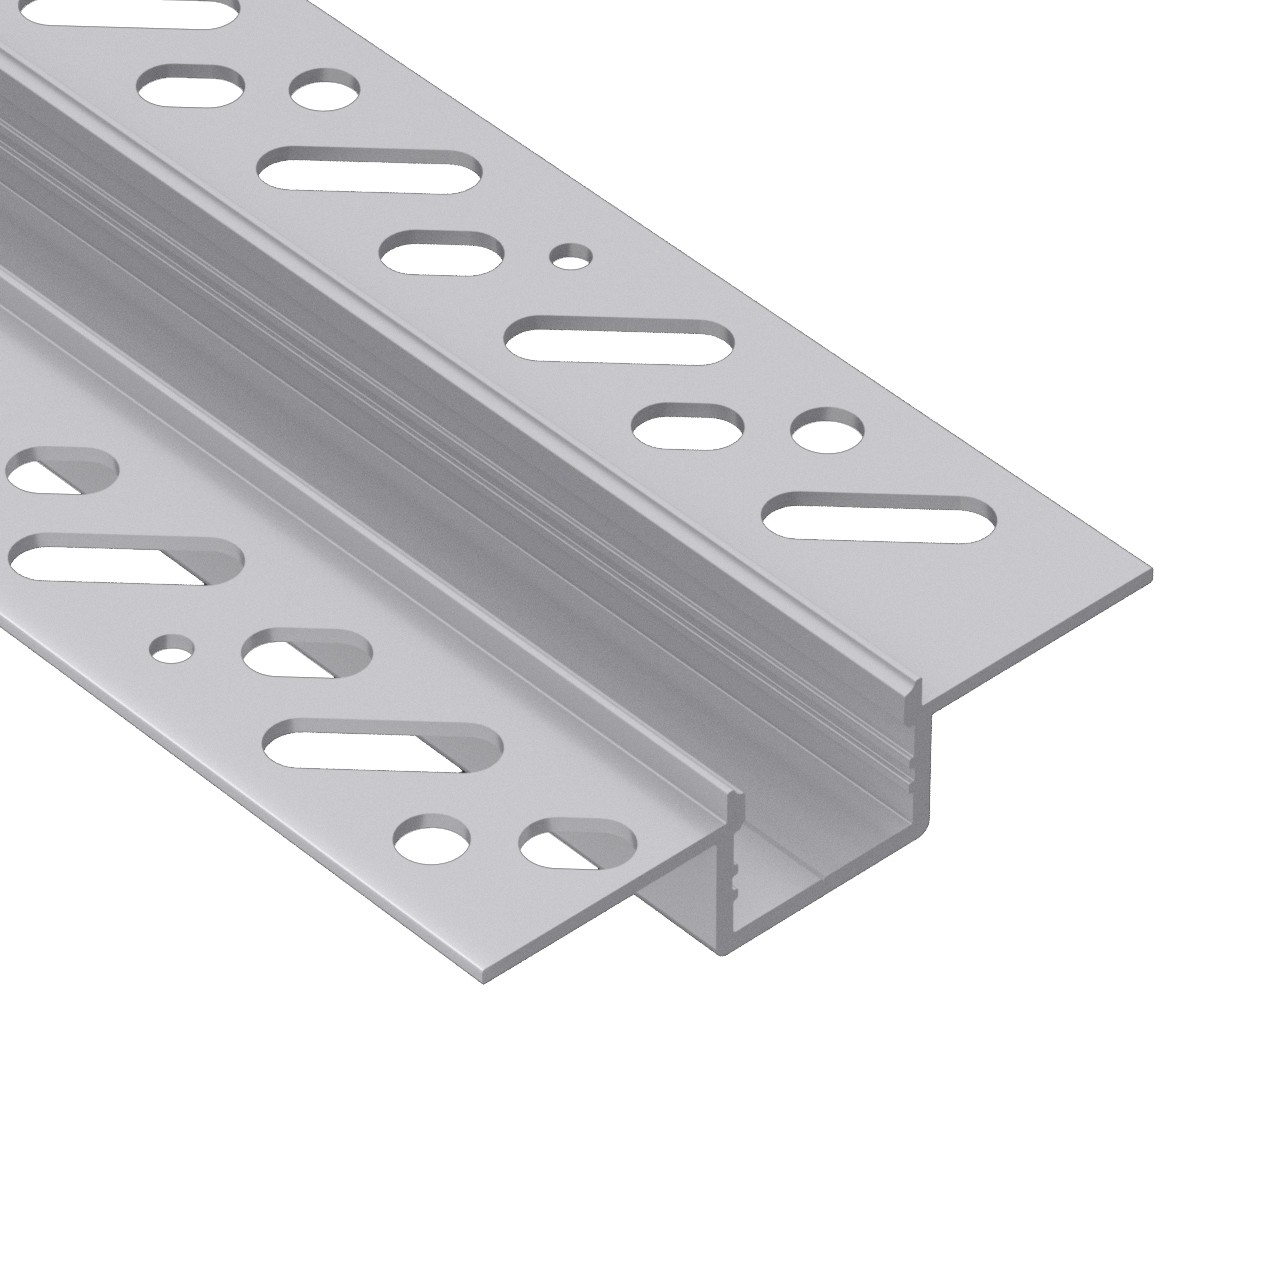 CT5 trimless extrusiones de aluminio para empotrar en paredes y techos de cartón-yeso 58.9x13.7mm